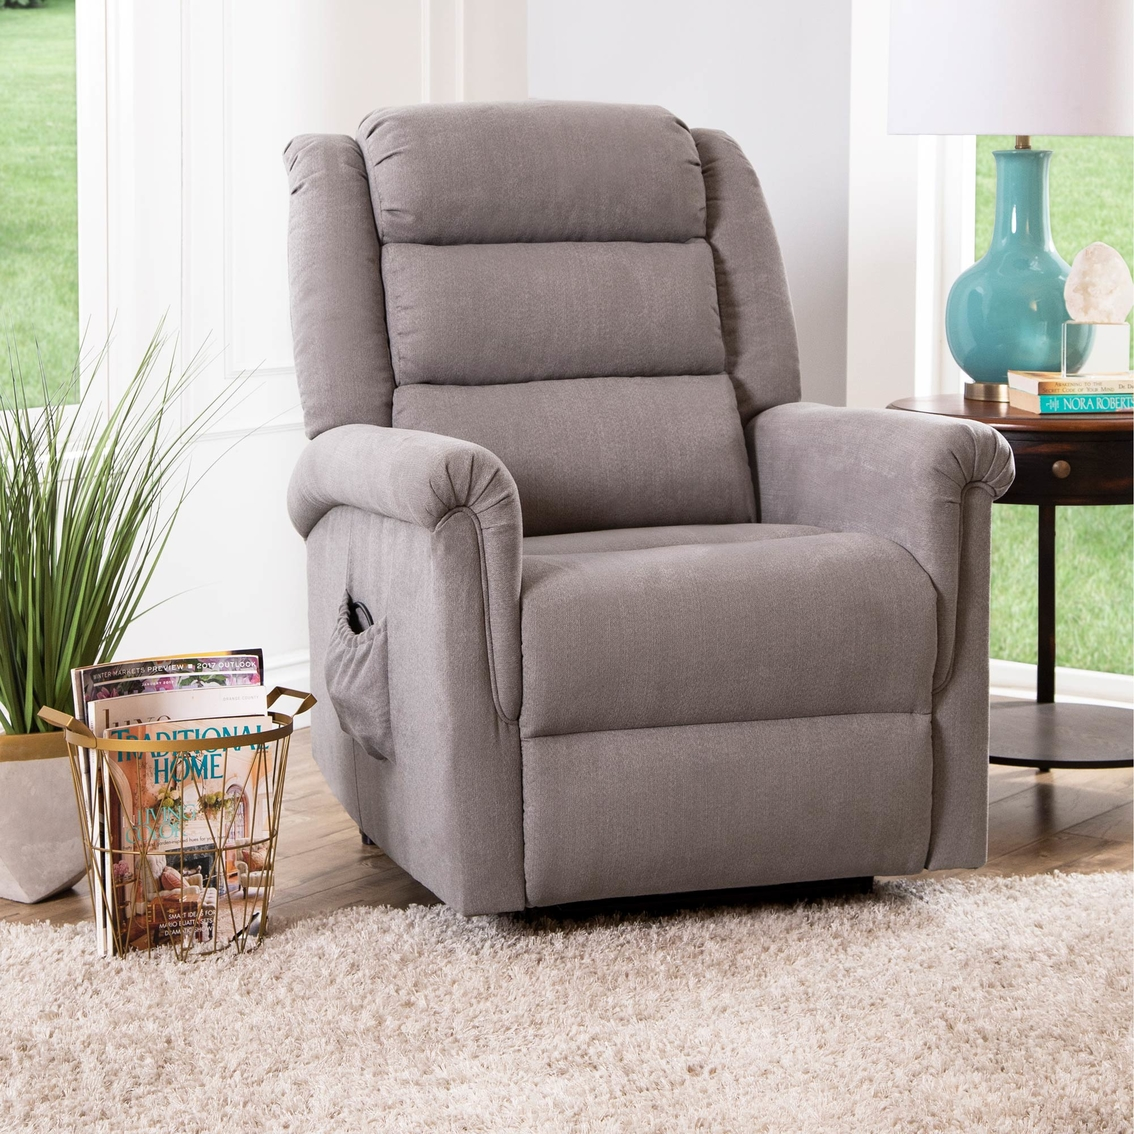 Superb Abbyson Overton Power Lift Recliner Chairs Recliners Gmtry Best Dining Table And Chair Ideas Images Gmtryco